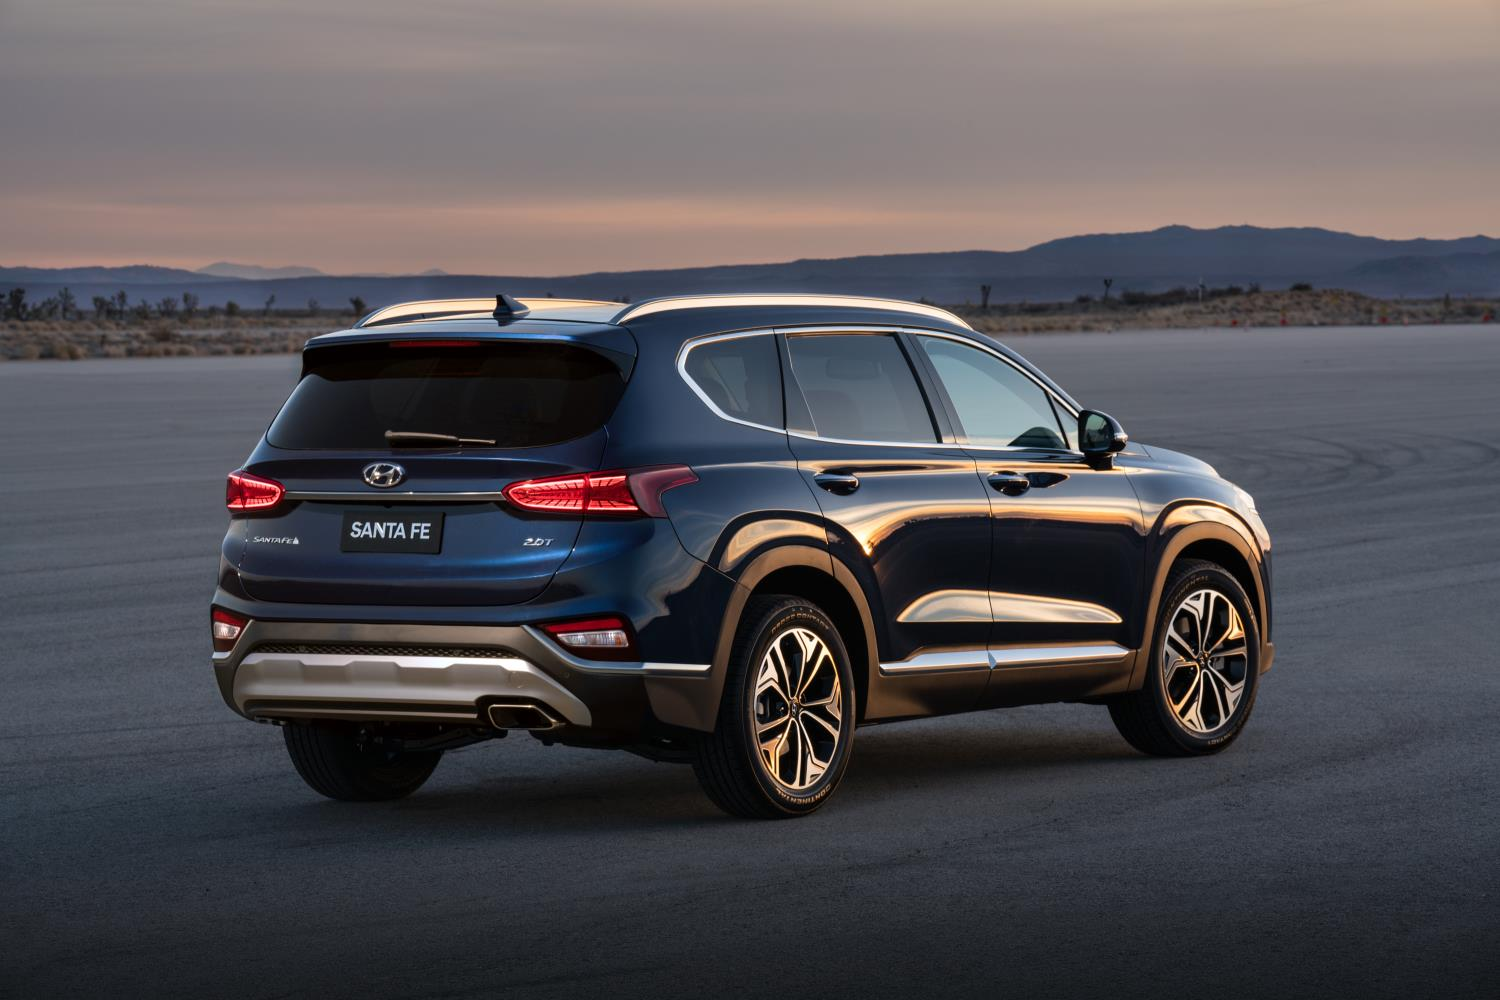 2019 hyundai santa fe priced from 25 500 autoevolution. Black Bedroom Furniture Sets. Home Design Ideas